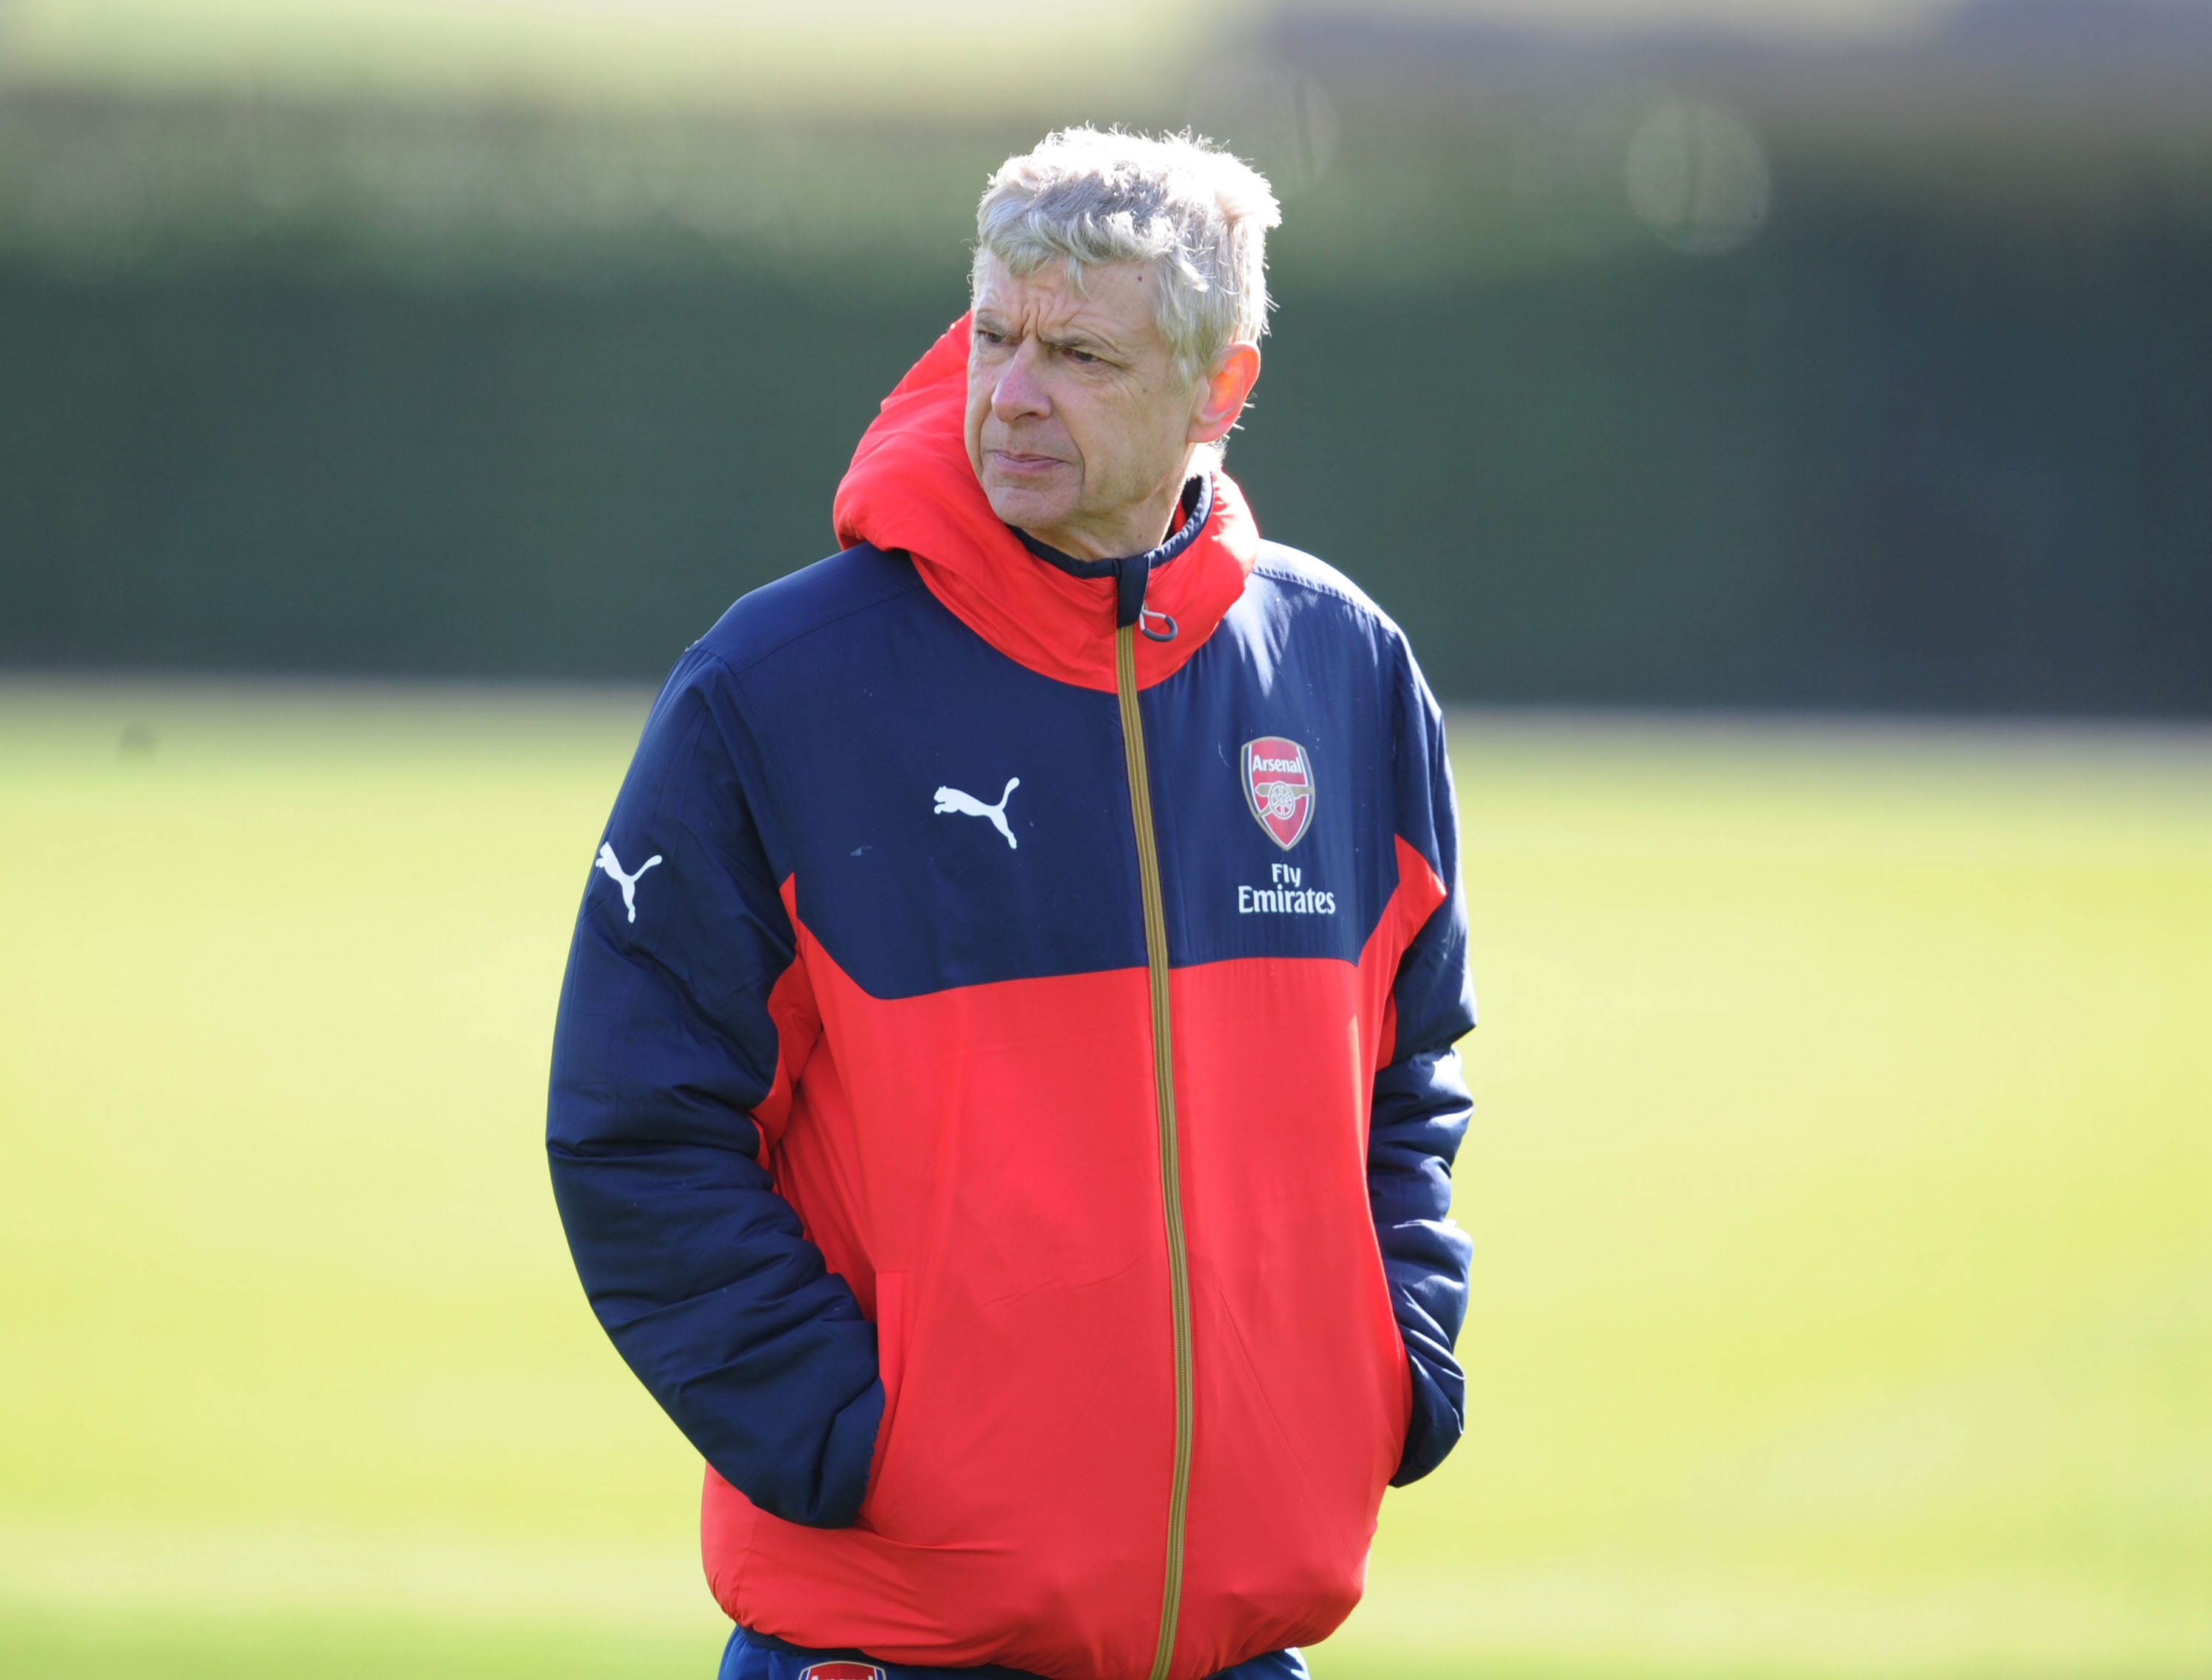 Why tonight's FA Cup game at Hull City could decide Arsene Wenger's Arsenal future